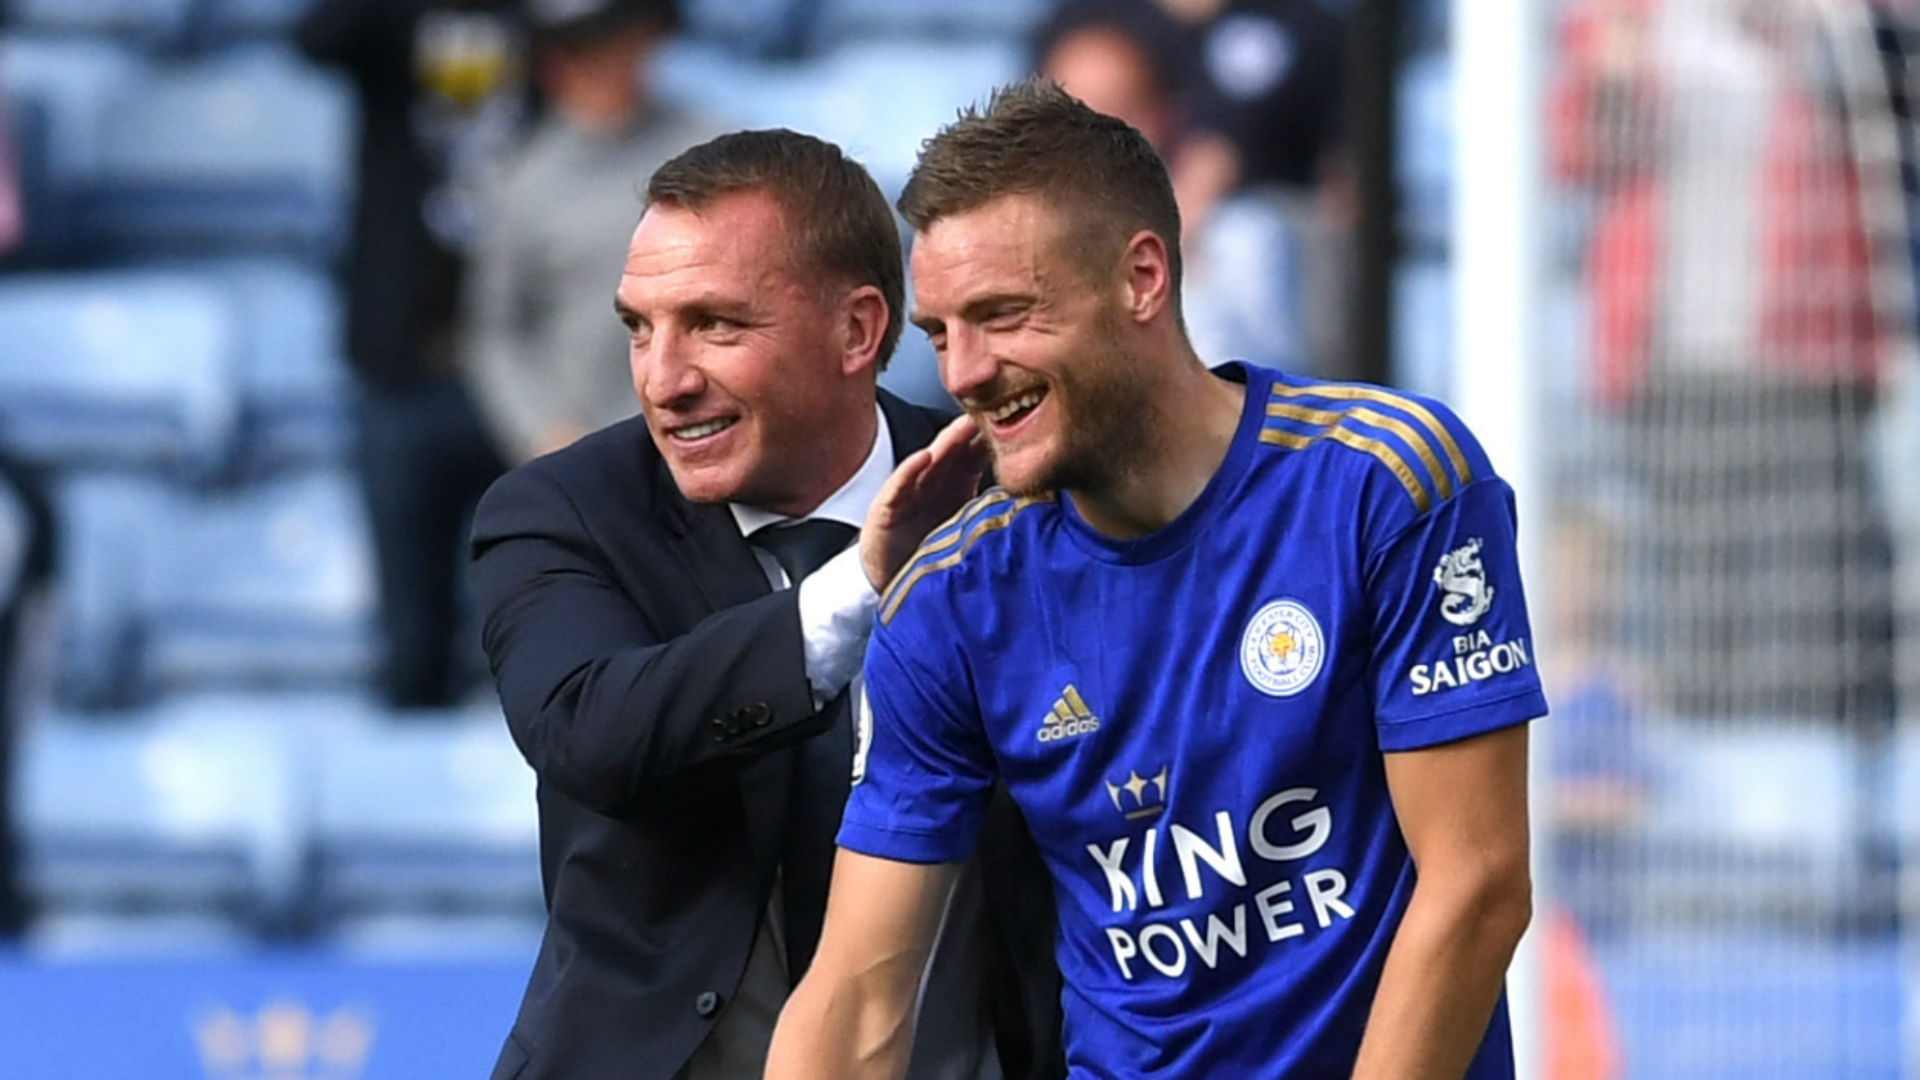 Are Rodgers, Vardy and Maddison building something special at Leicester City?